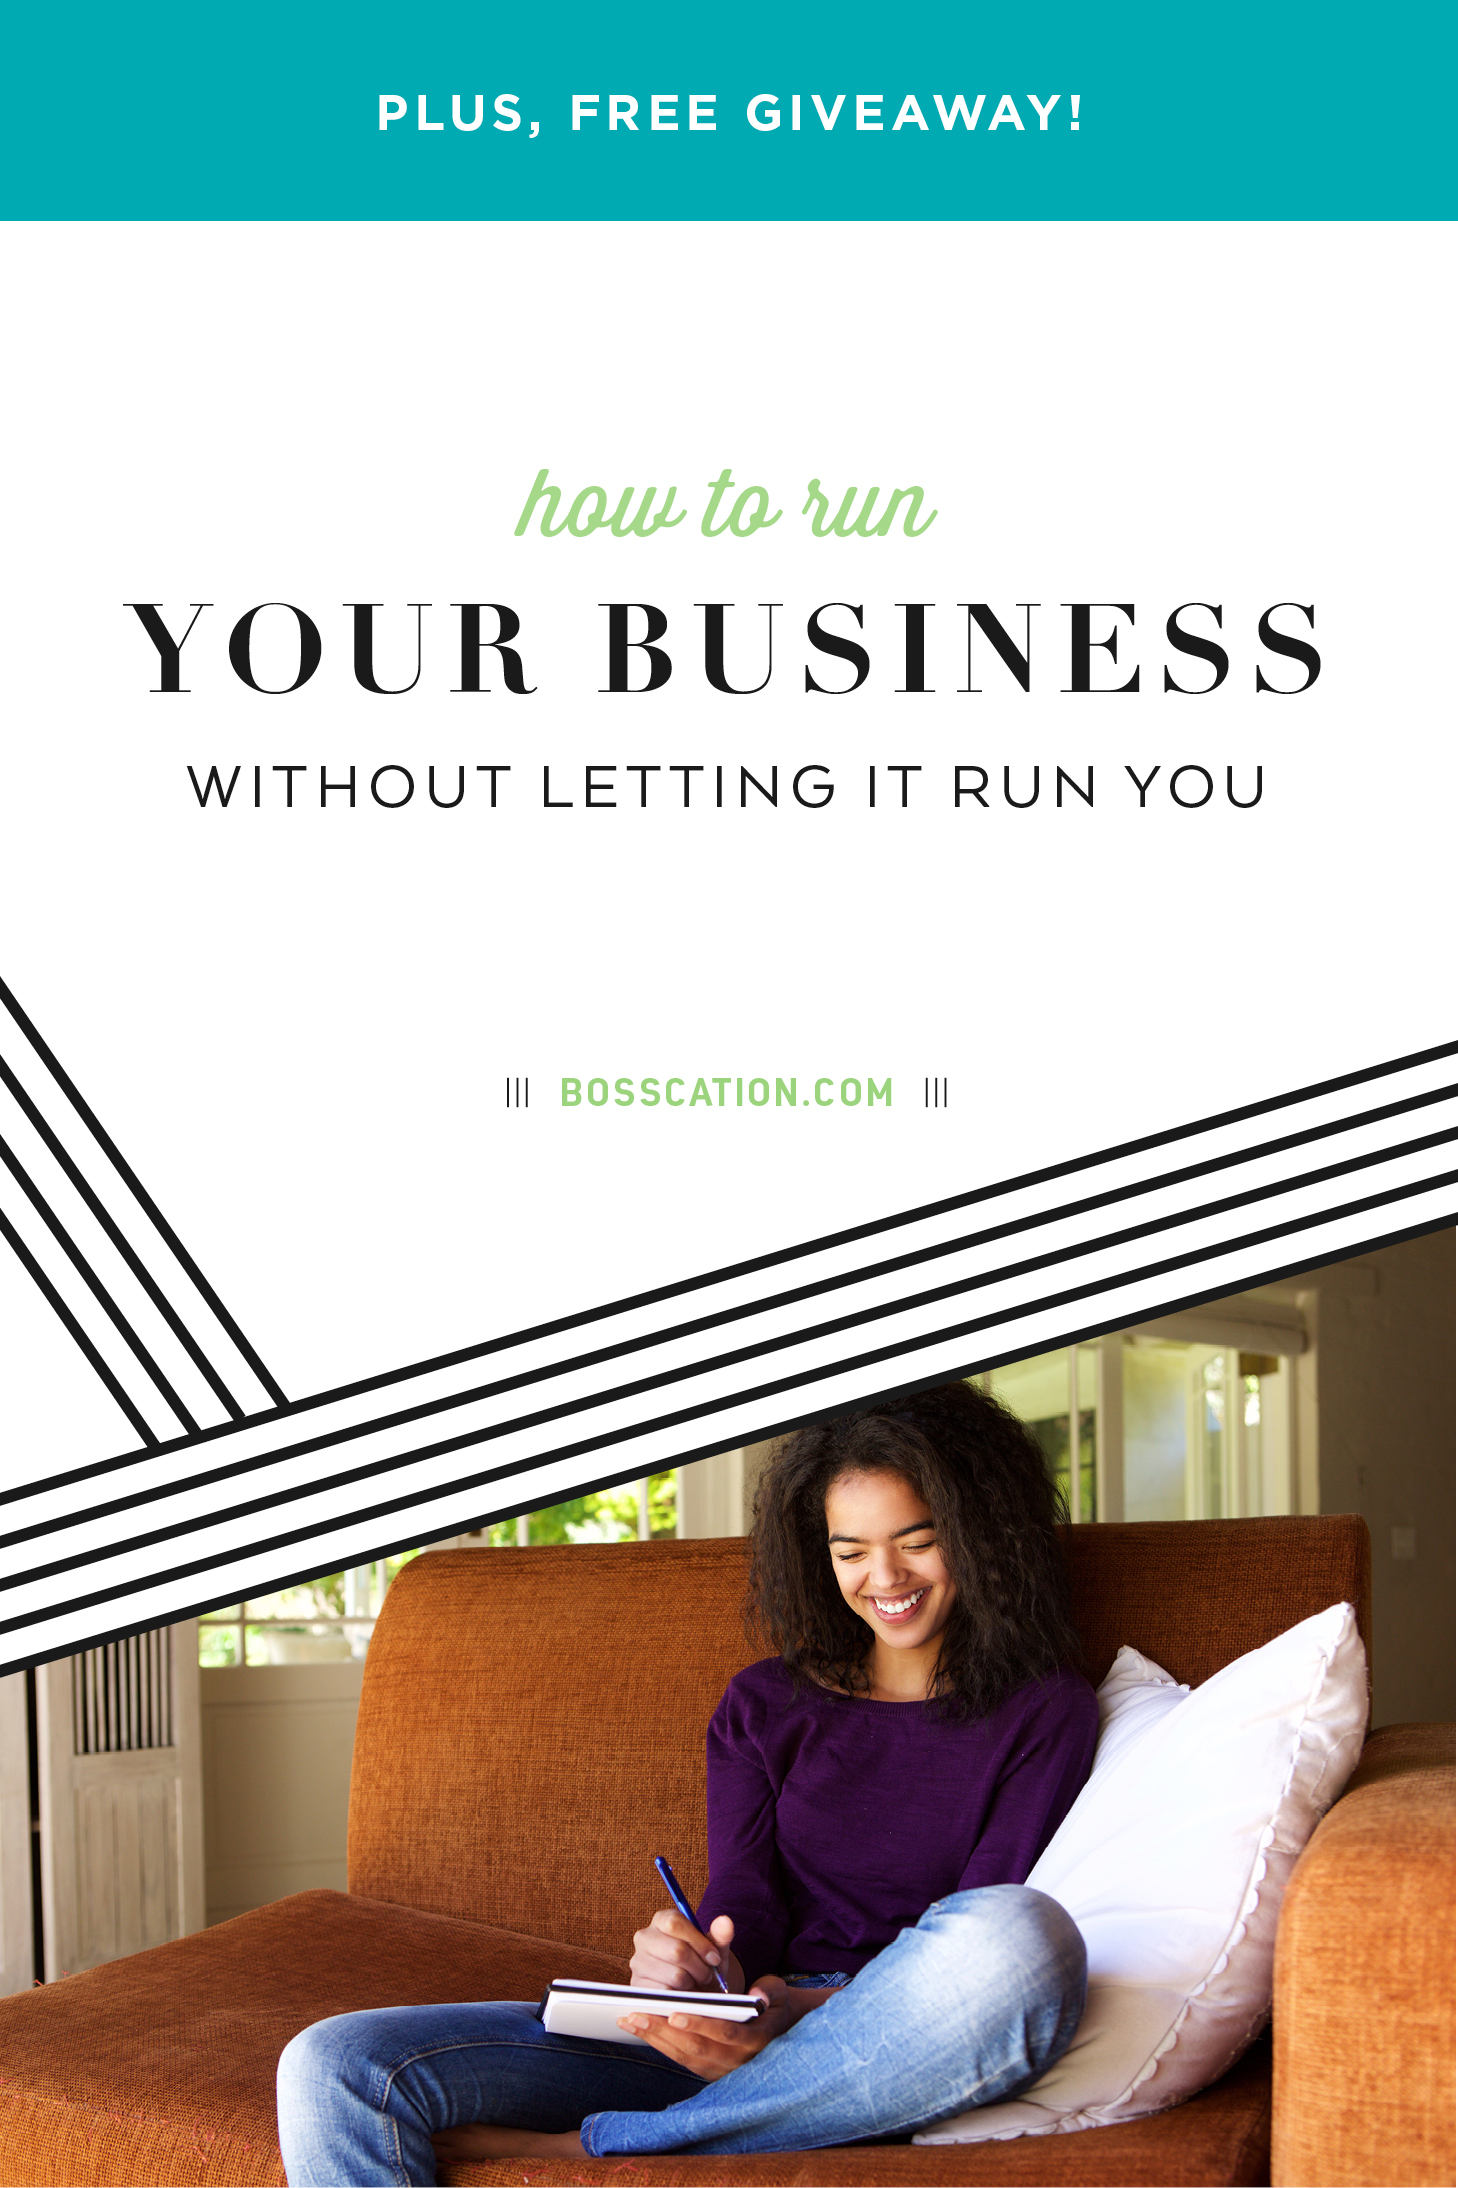 Feel like your business runs you, rather than you running your business? Here are some steps you can take to regain control, and avoid burnout.